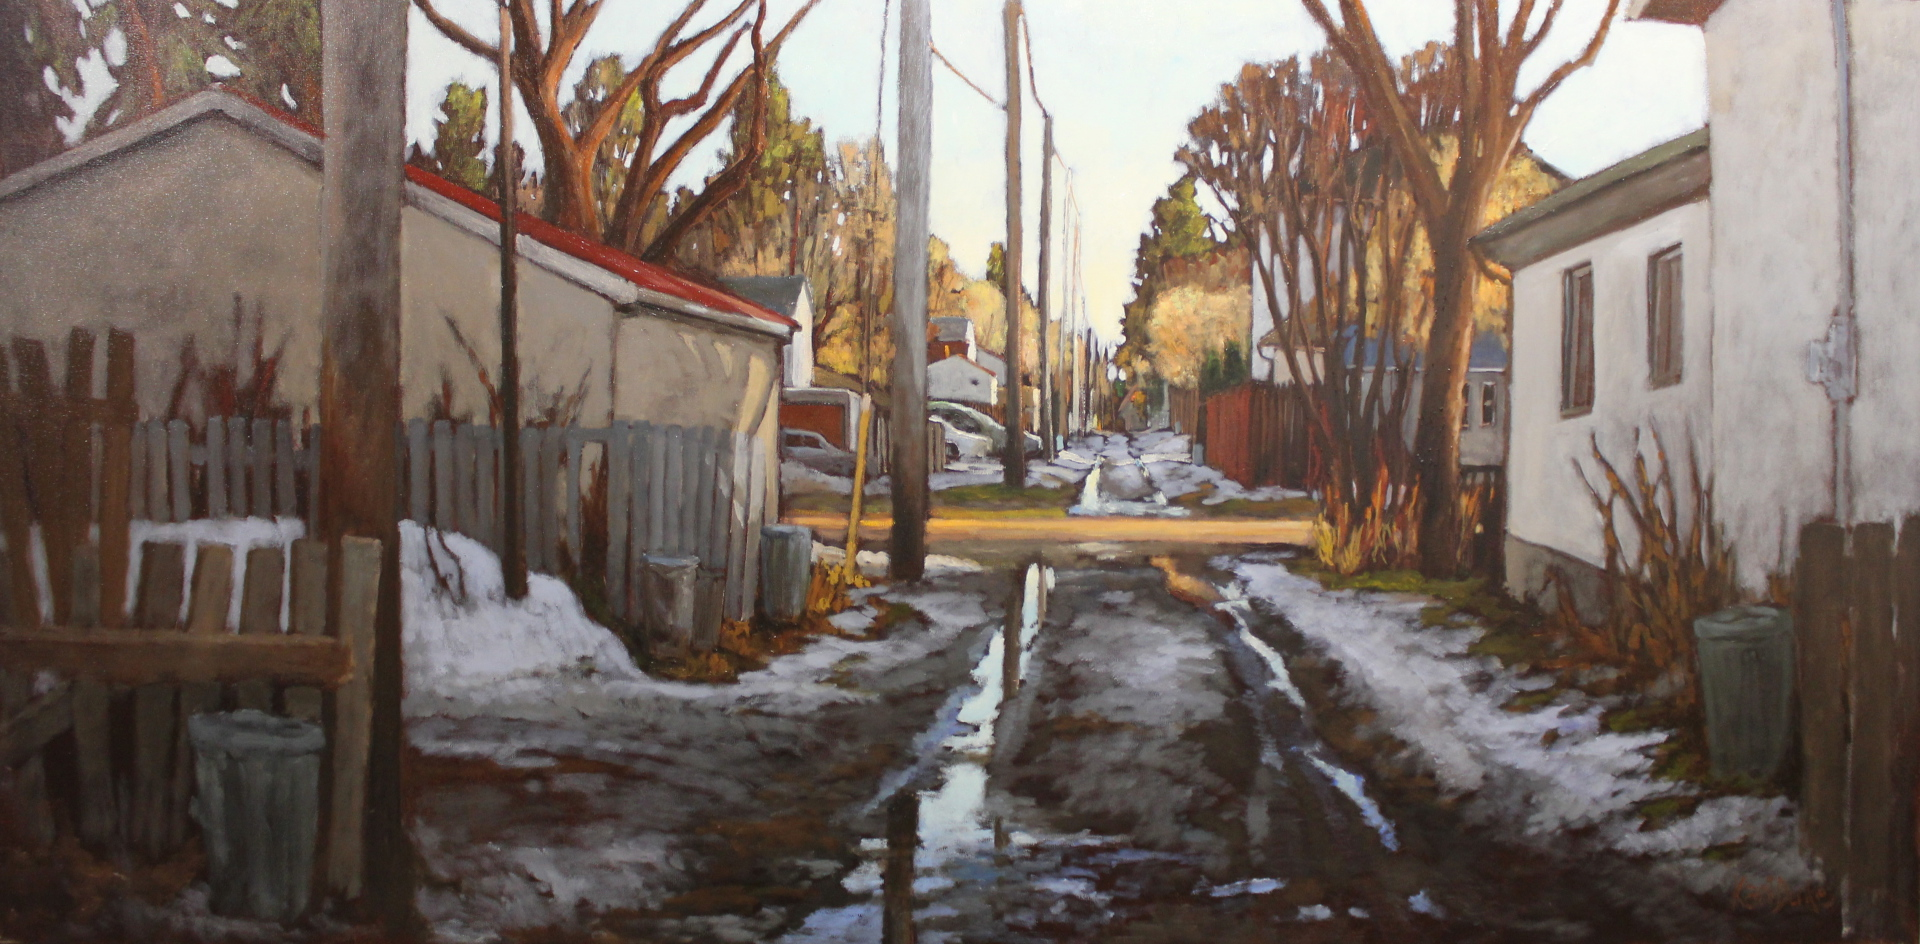 OFF 106TH STREET/A PERFECT WALK - 36X72 - OIL ON CANVAS - 2015